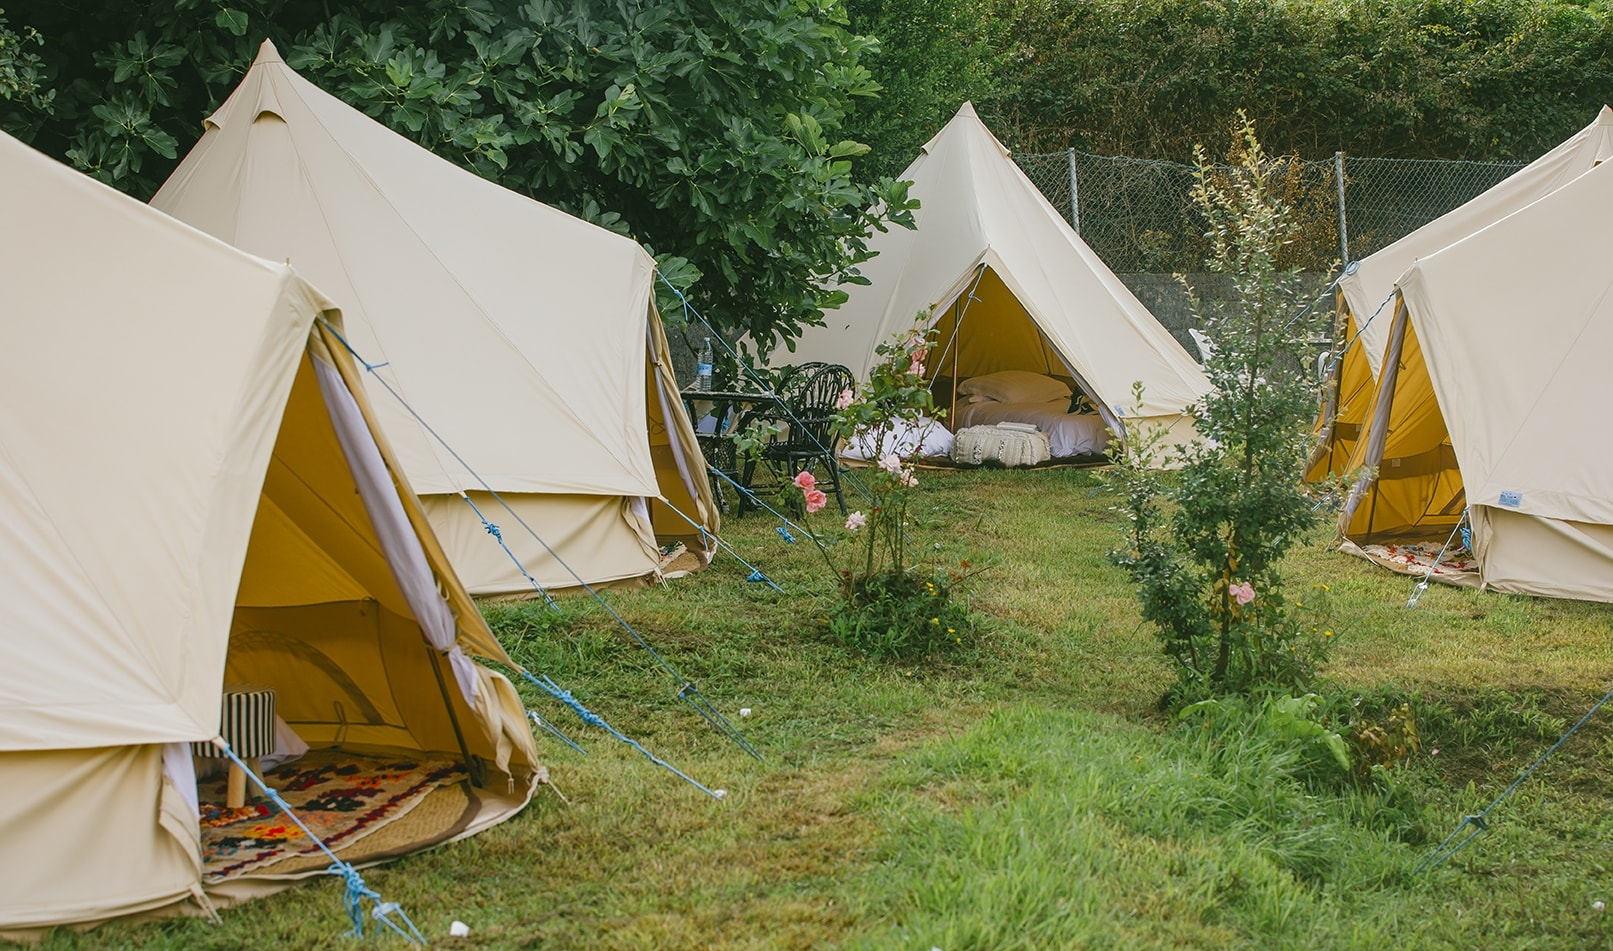 Holding a festival and want to offer glamping? Chat with the Snazzy Camp team about your needs